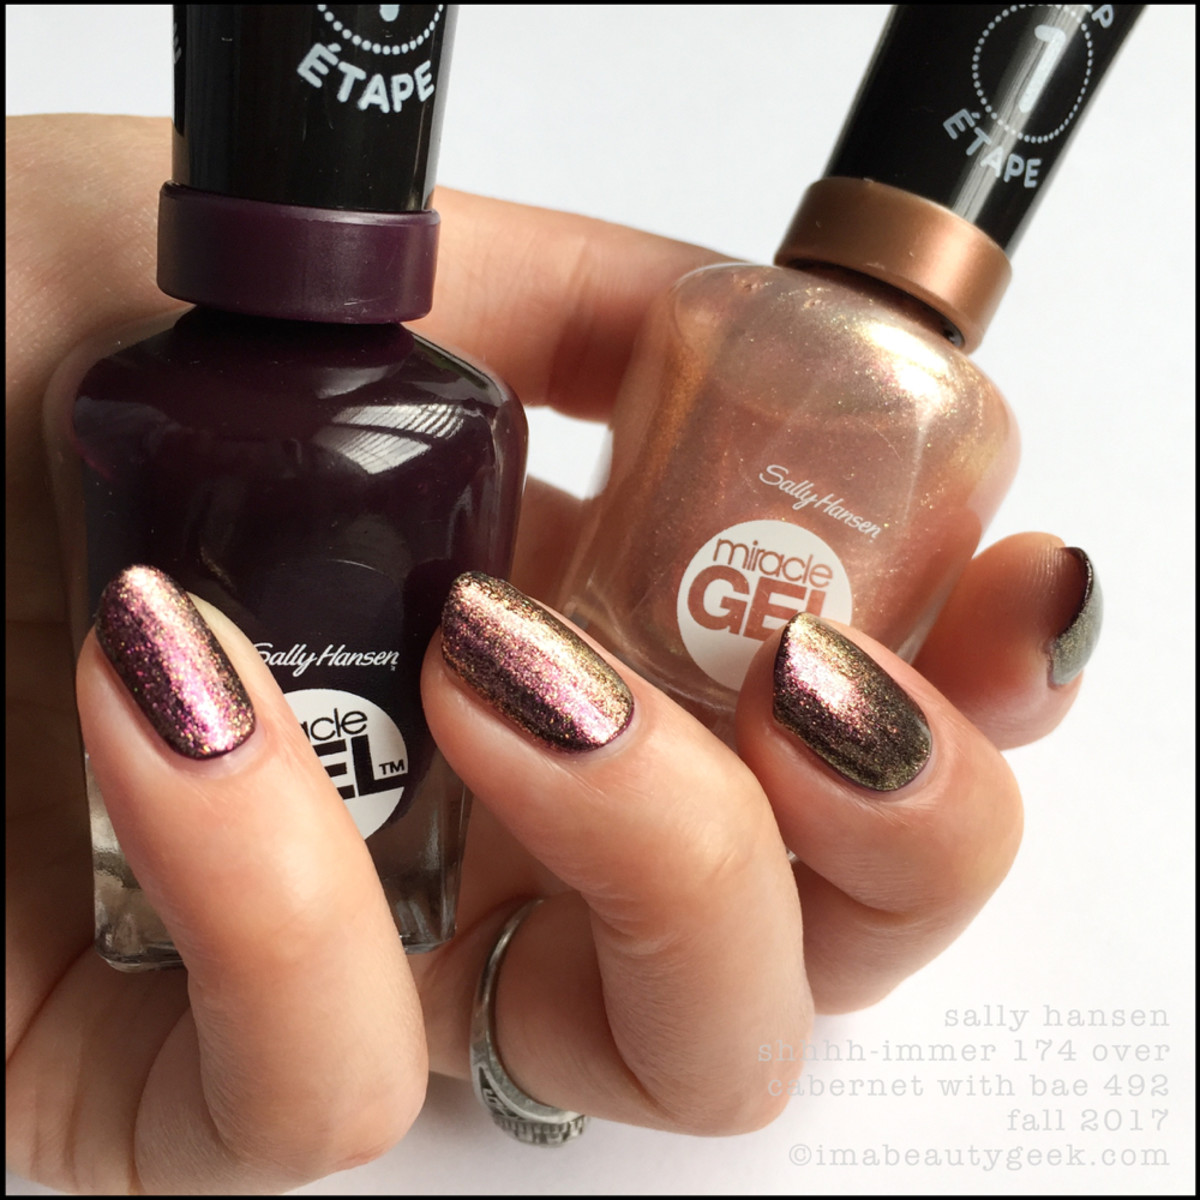 Sally Hansen Shhhhimmer over Cabernet with Bae _ Sally Hansen Miracle Gel Swatches Fall 2017